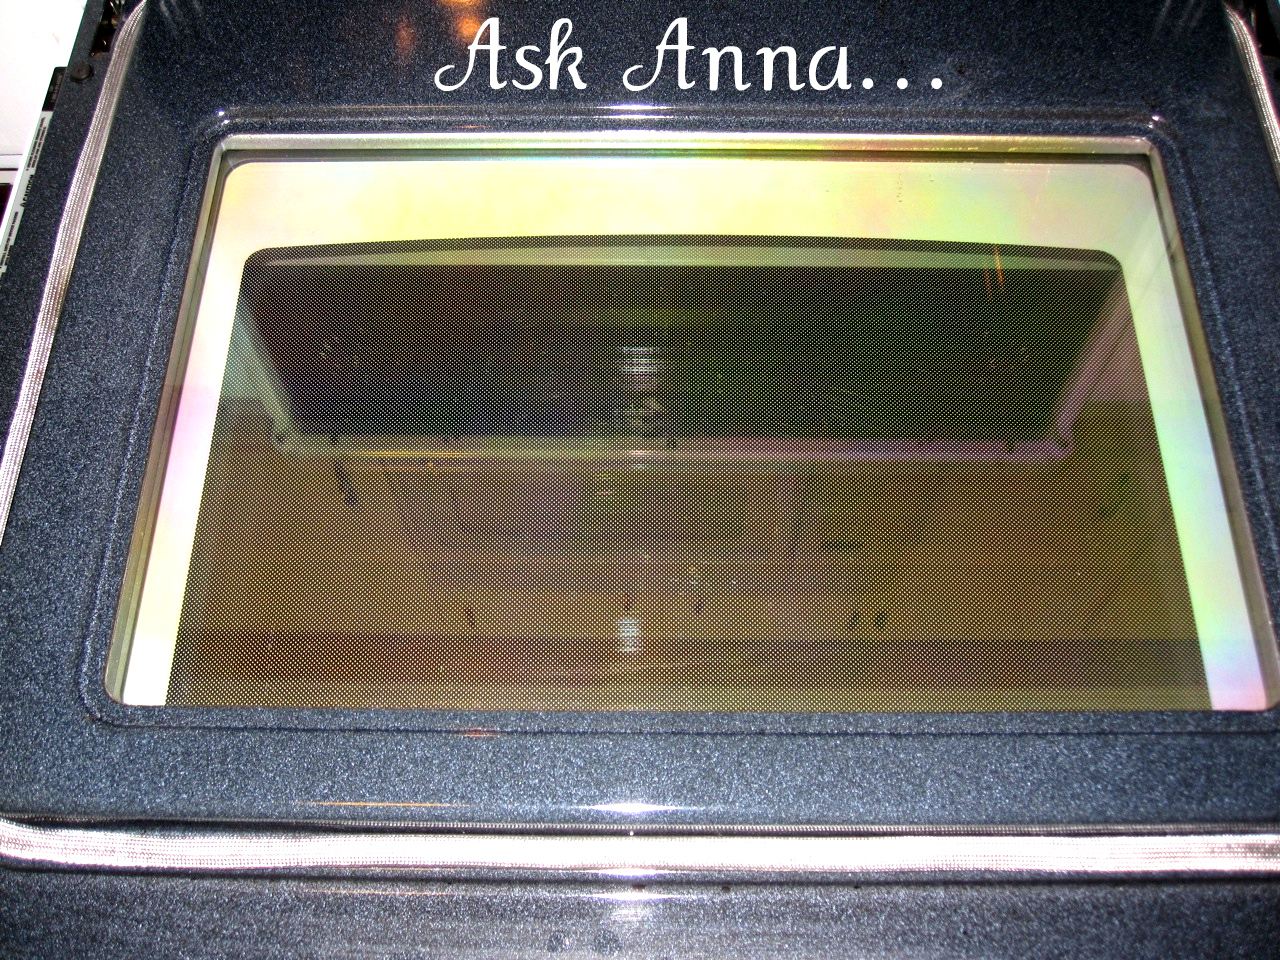 To clean oven glass ask anna how to clean oven glass ask anna planetlyrics Gallery